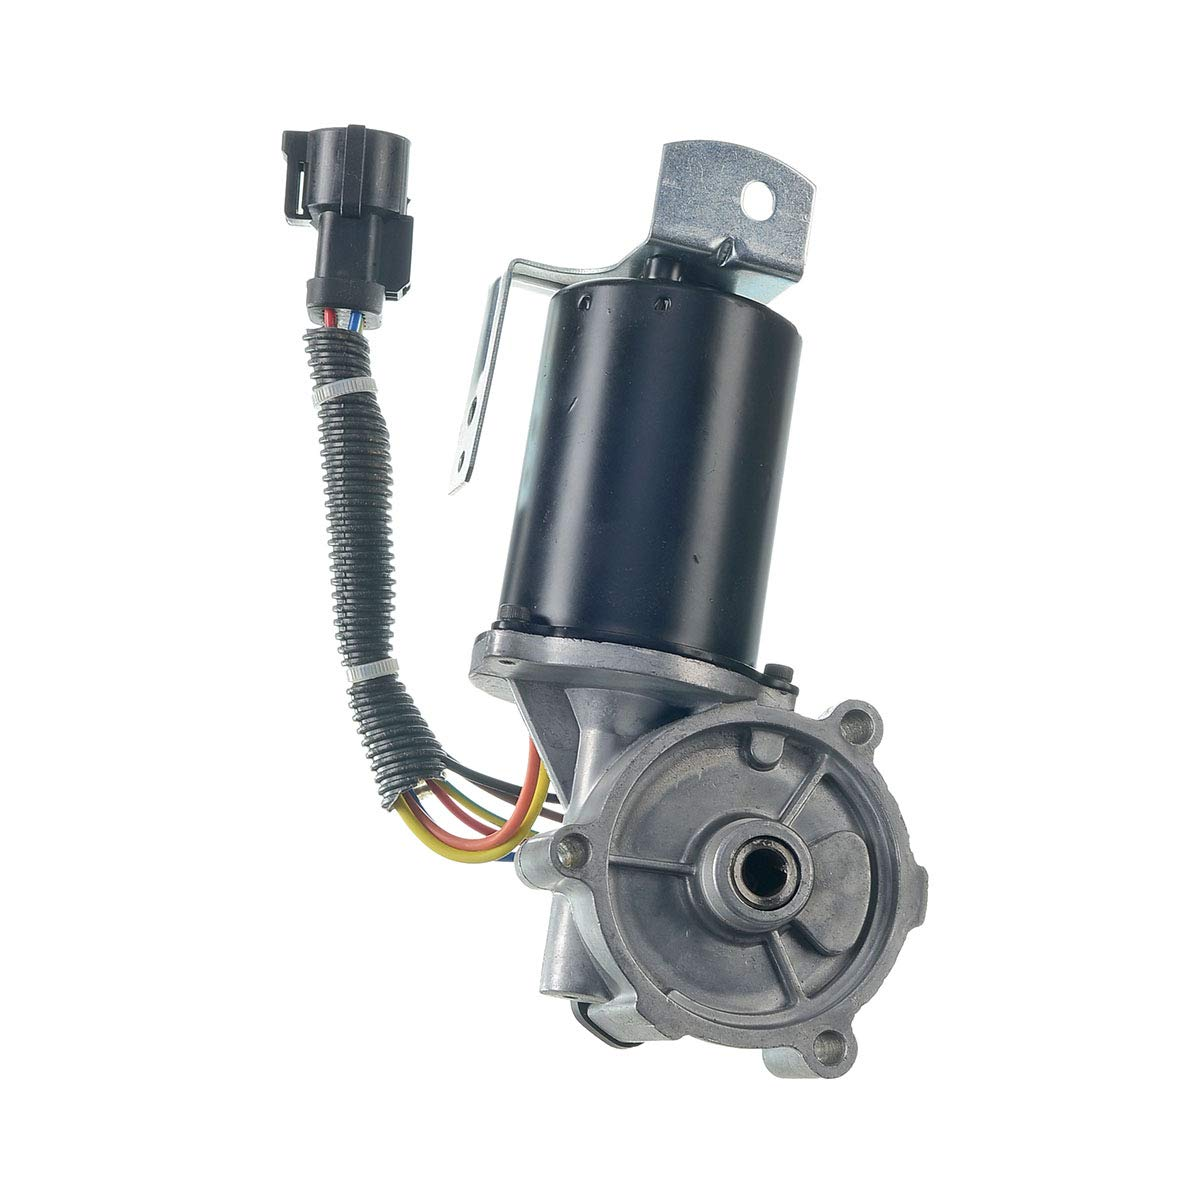 A-Premium Transfer Case Shift Motor for Ford Ranger 2006-2011 with 7 Pins